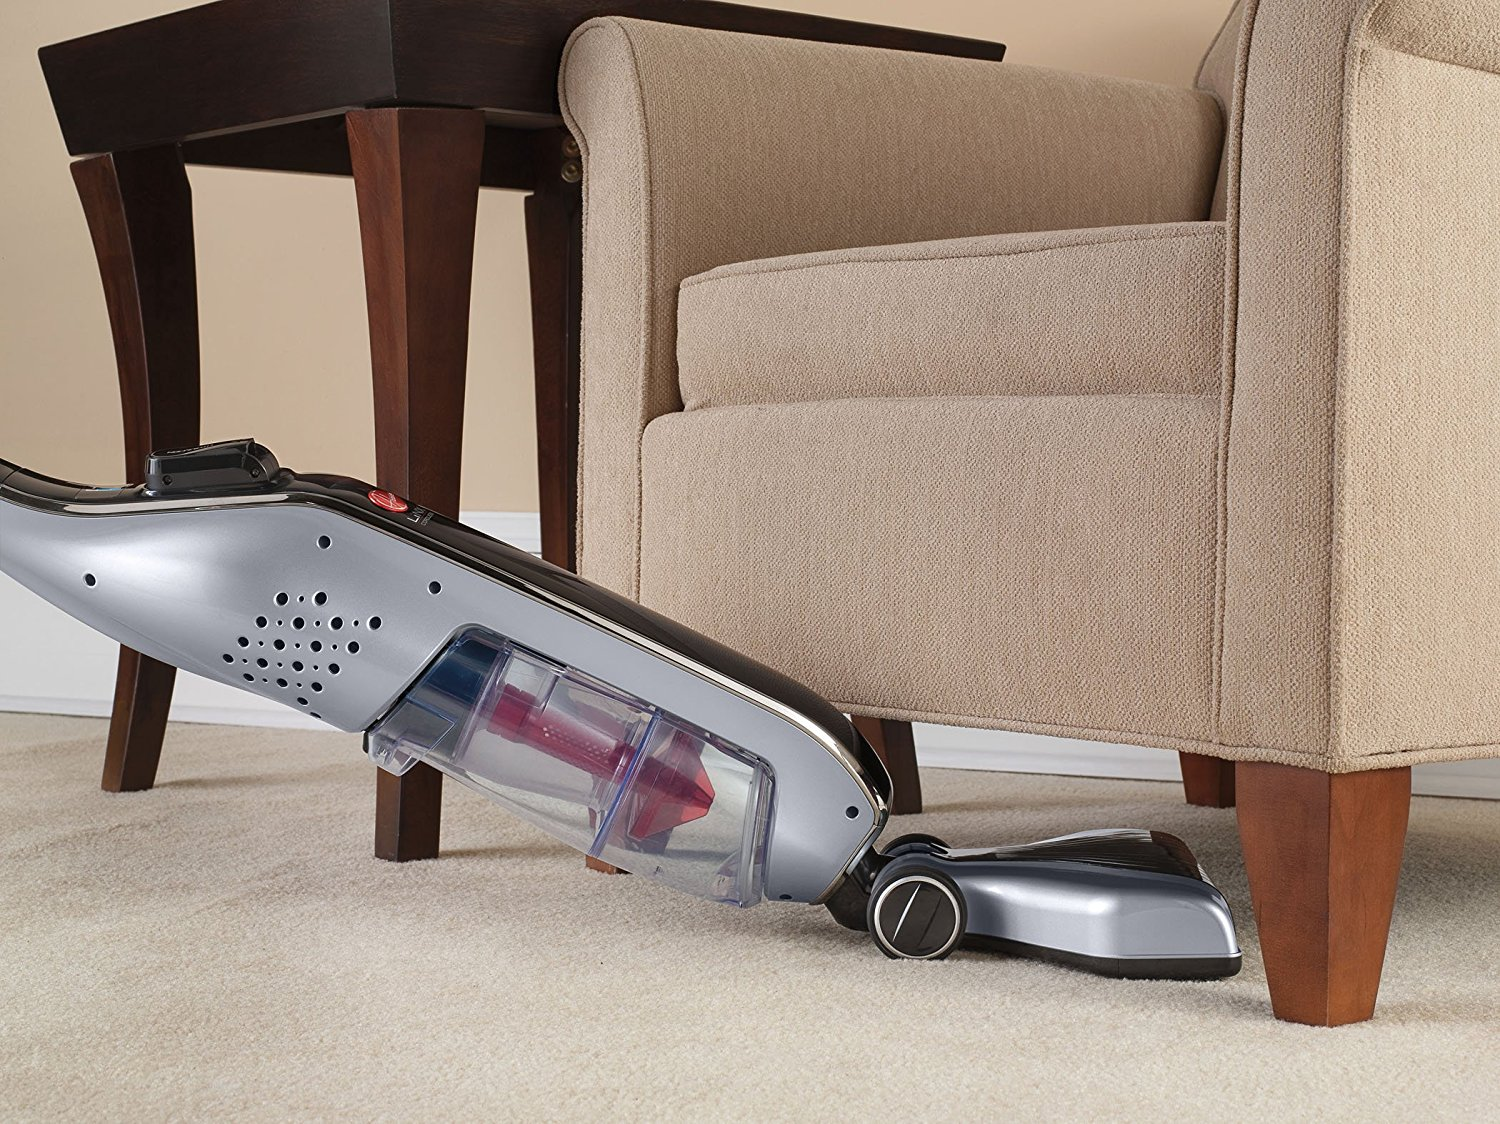 Hoover Linx BH50010 Cordless Stick Vacuum